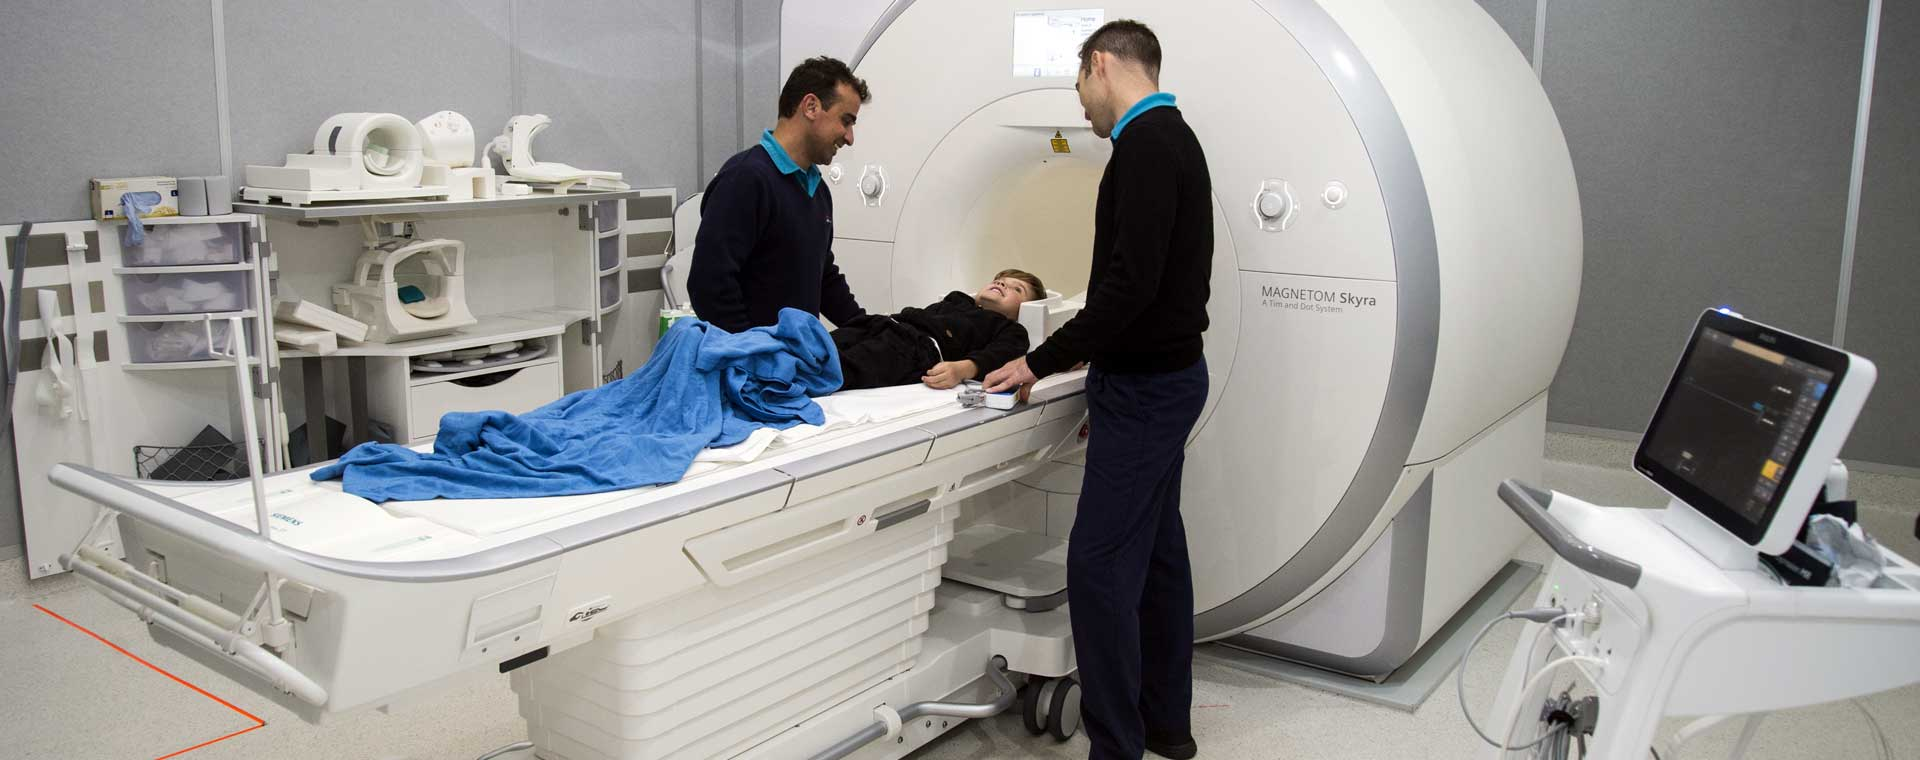 Medical Imaging staff with patient